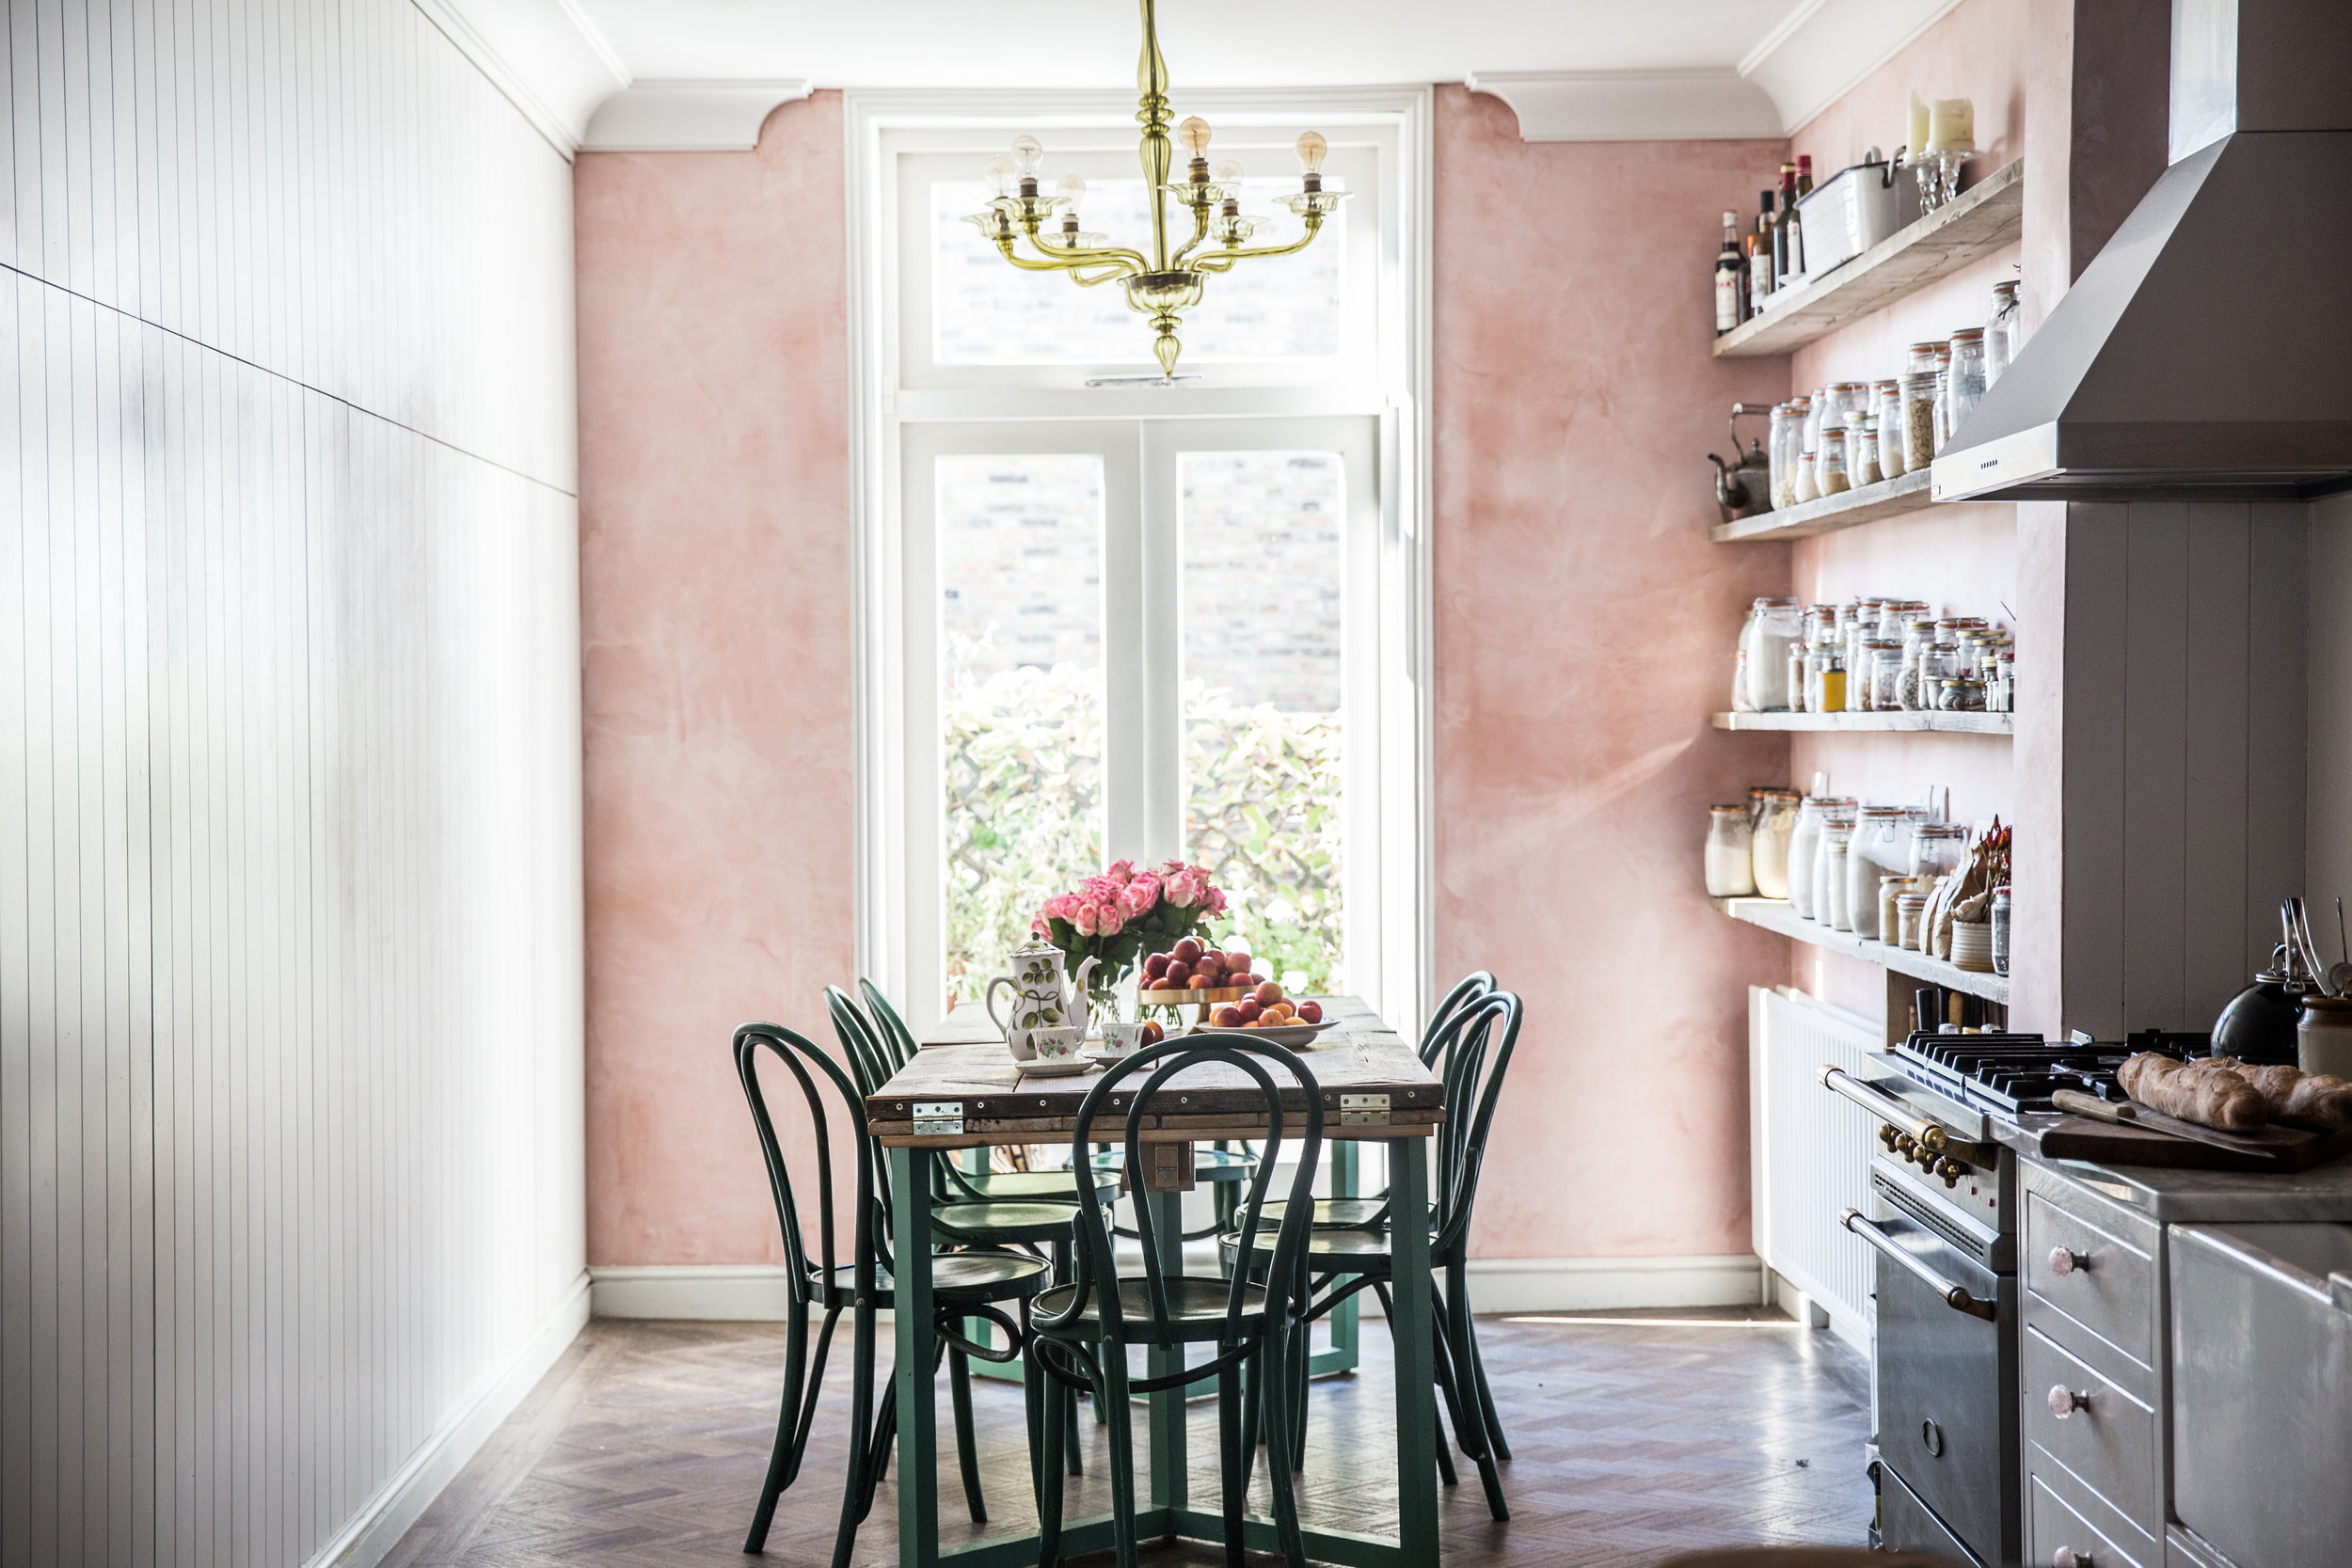 Skye_McAlpine_From_My_Dining_Table_London_apartment_Louise_Dockery_Paper_and_Moon_dining_table.jpg